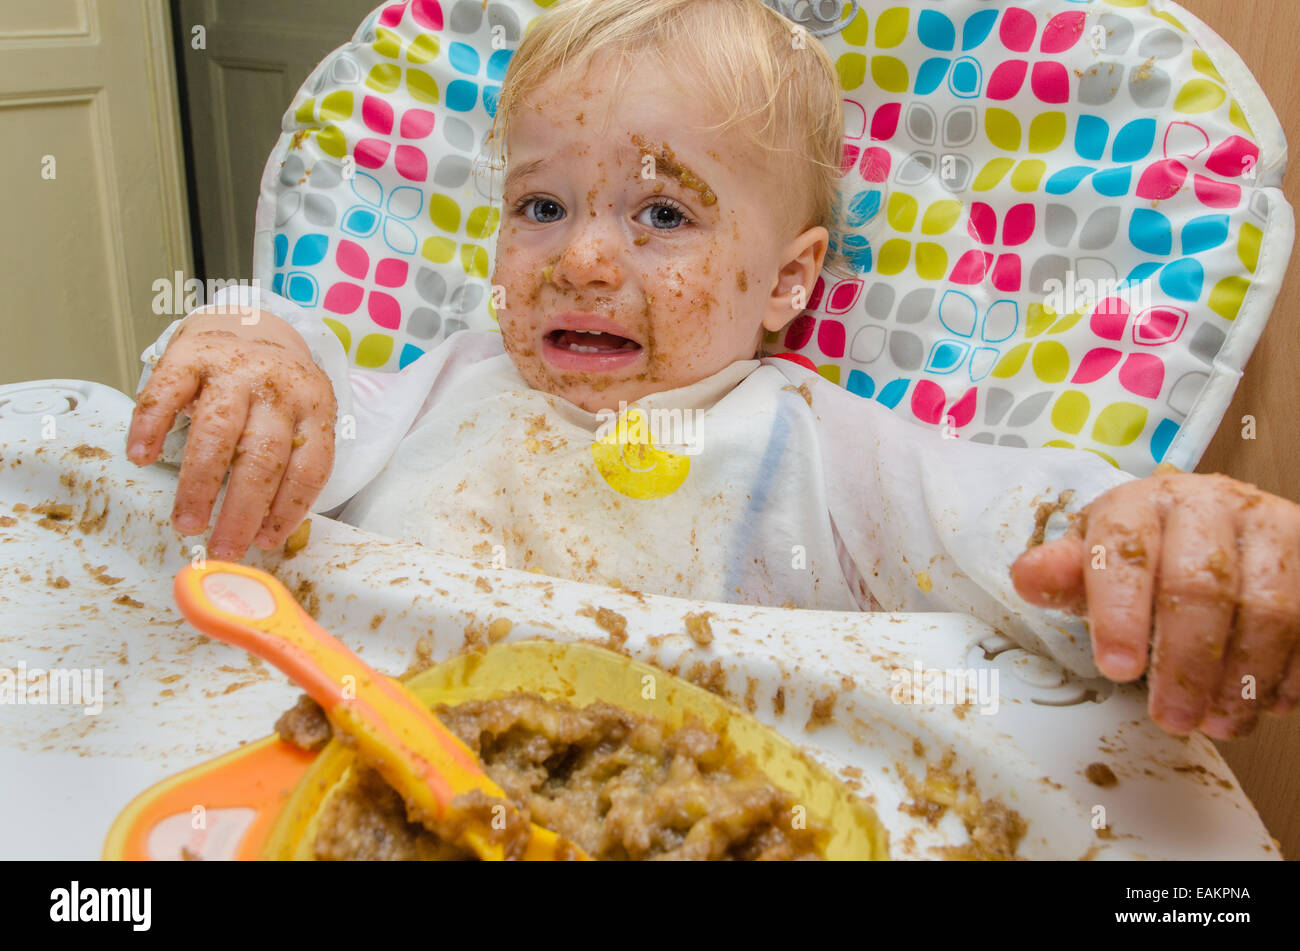 A baby boy (ca. 18 months old) makes a terrible mess of his meal. - Stock Image